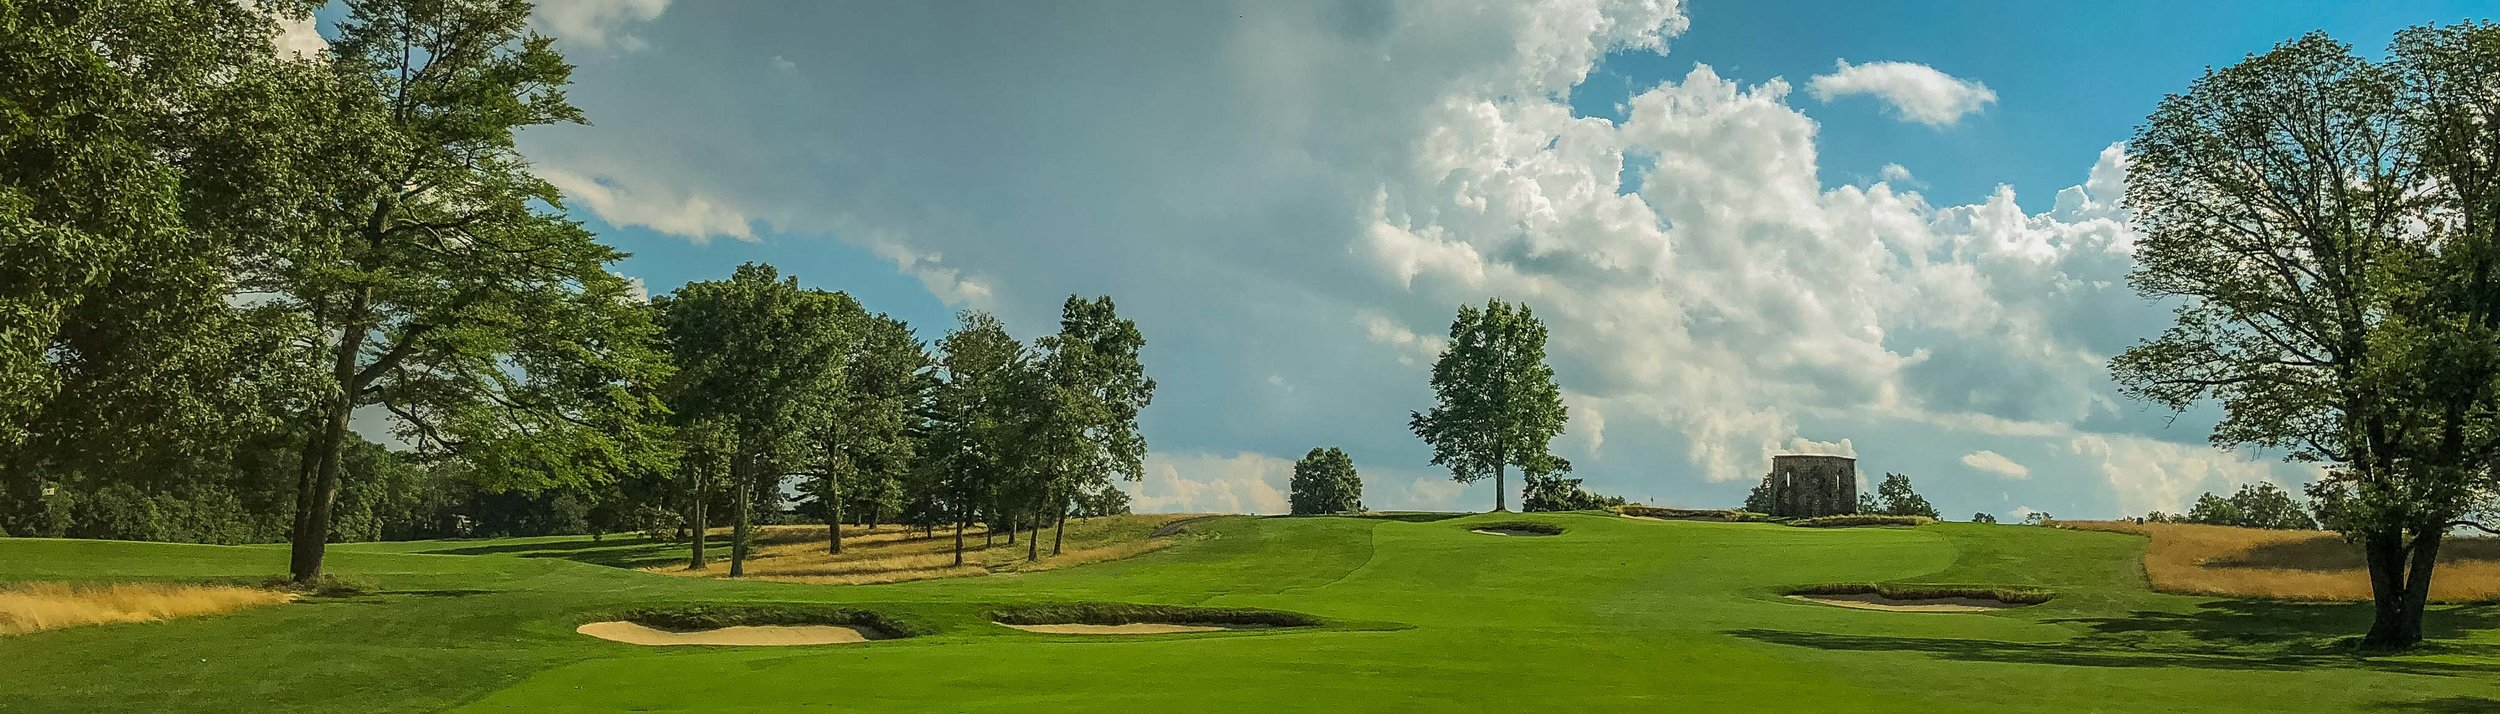 Golf Course SCC 2018- HAP (18 of 33).jpg